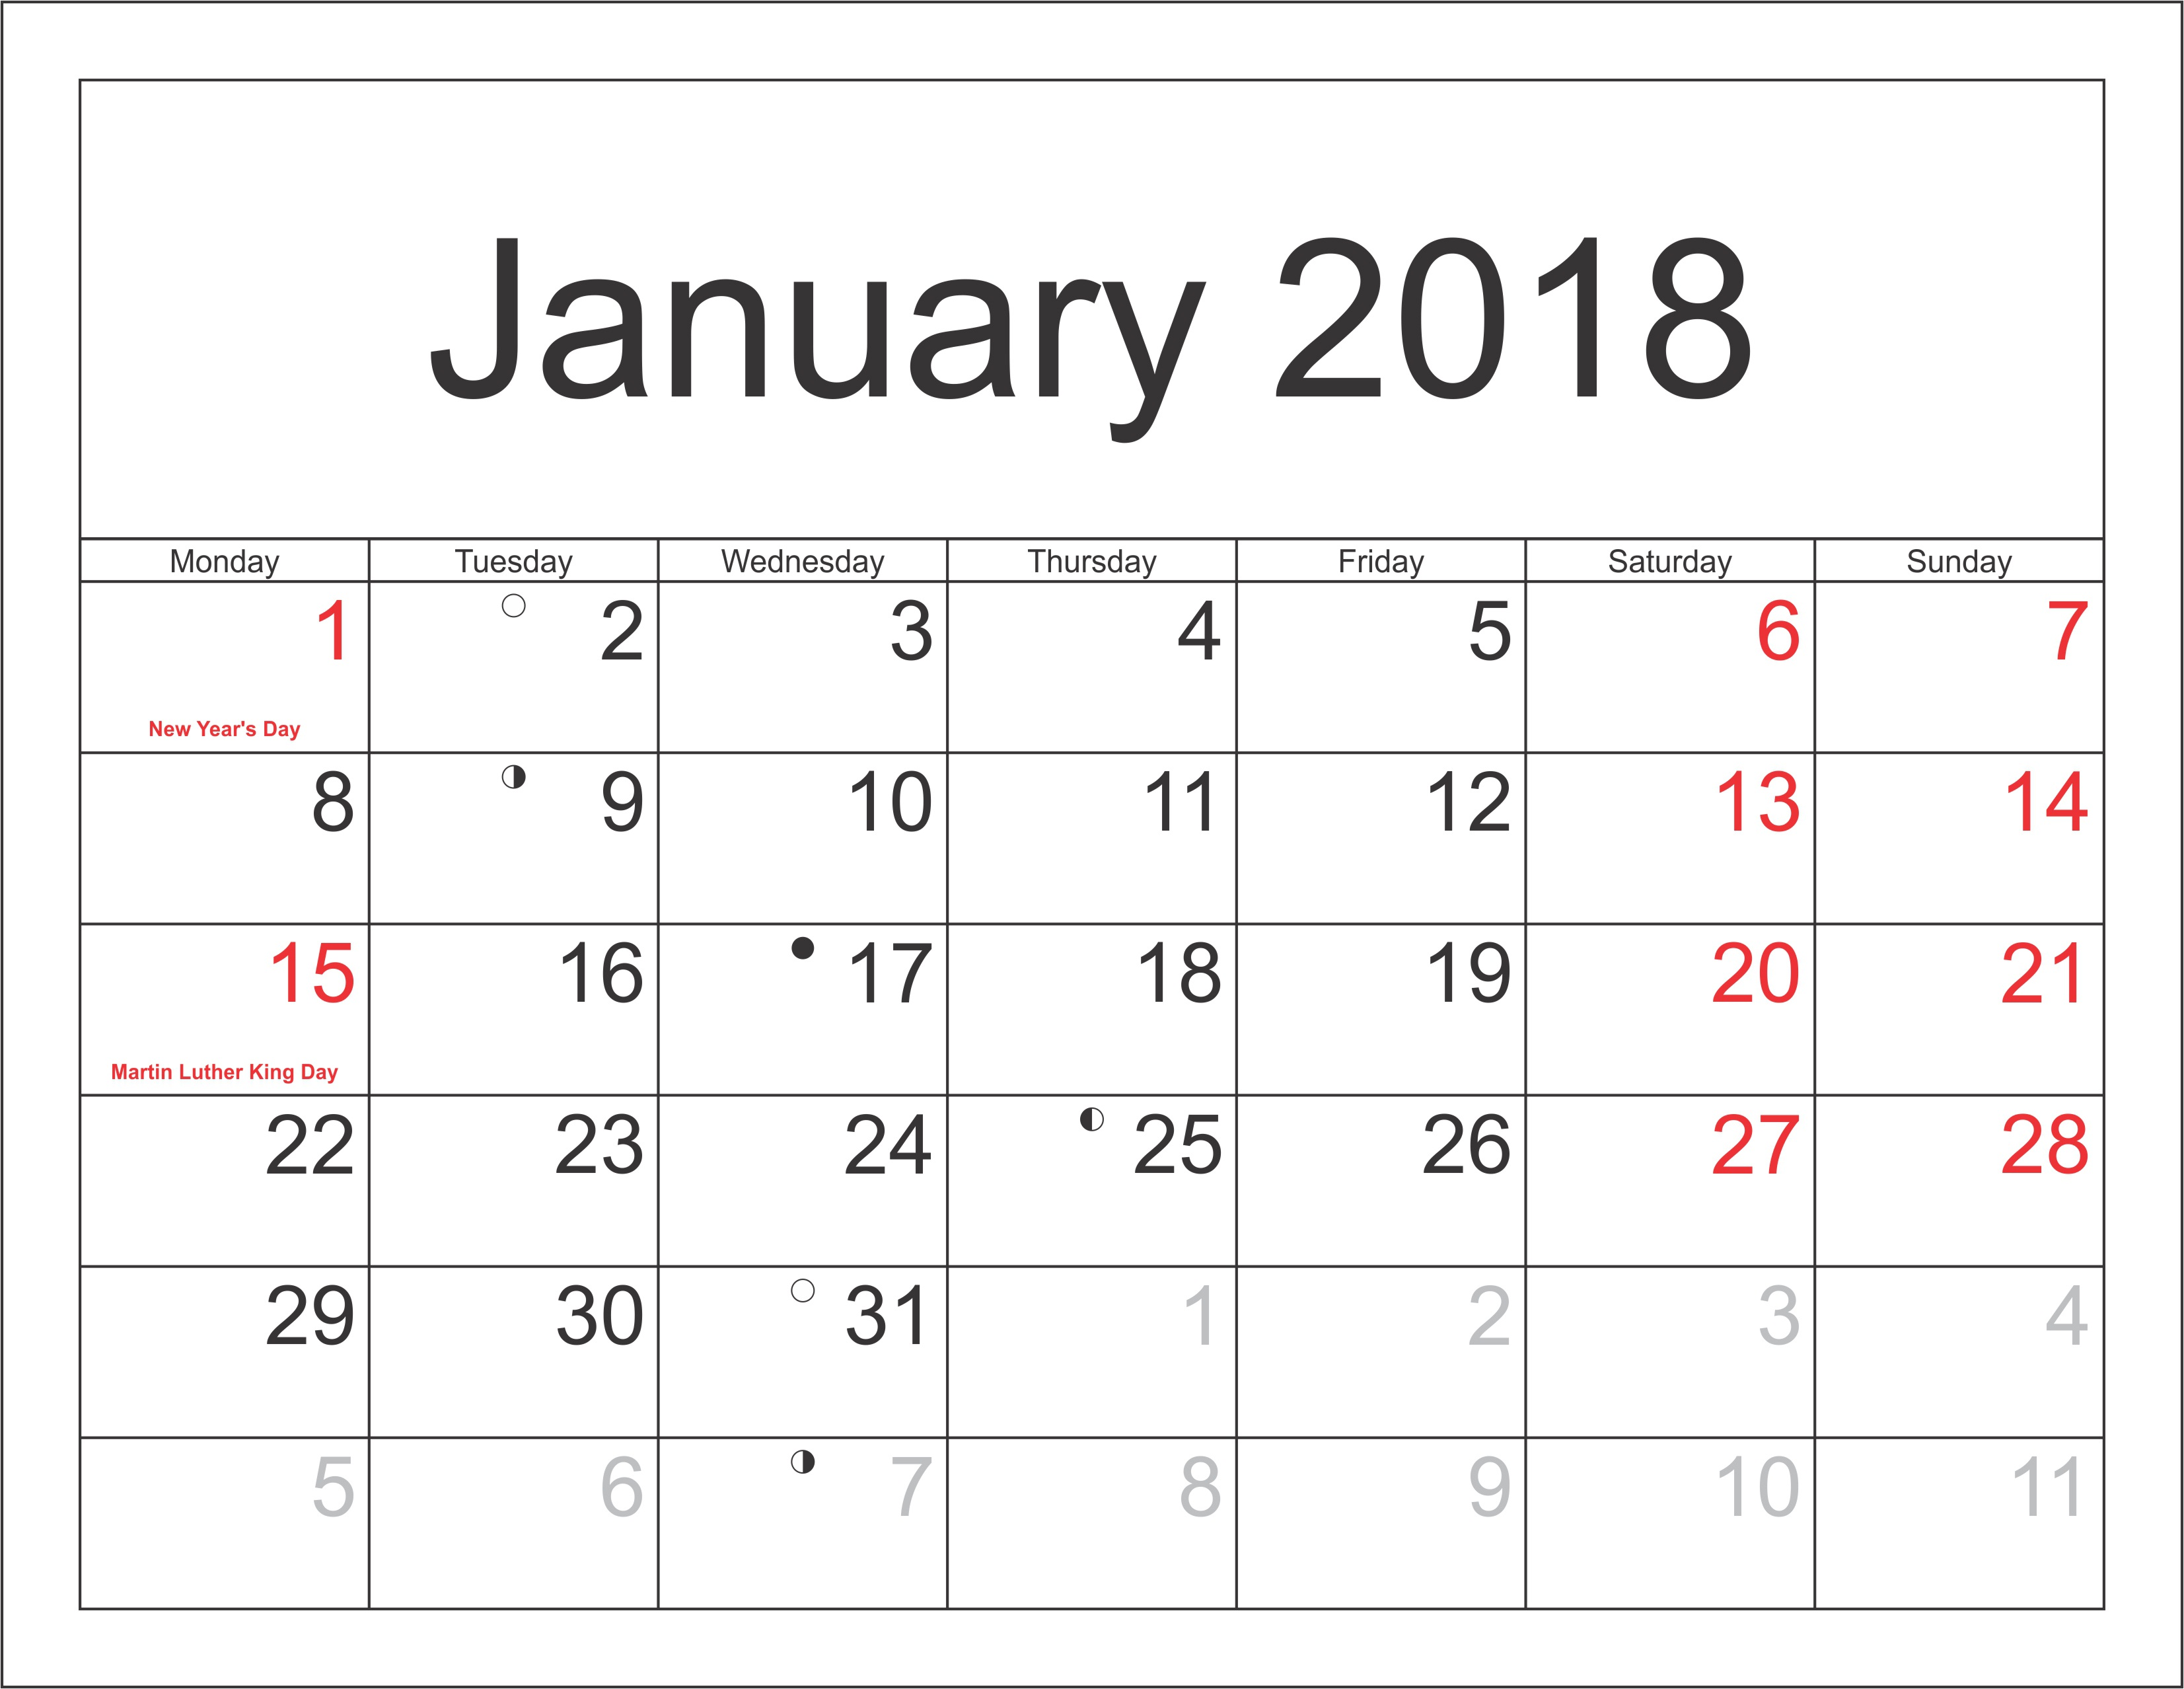 January Calendar 2018 Printable Latest HD Pictures 3306x2556